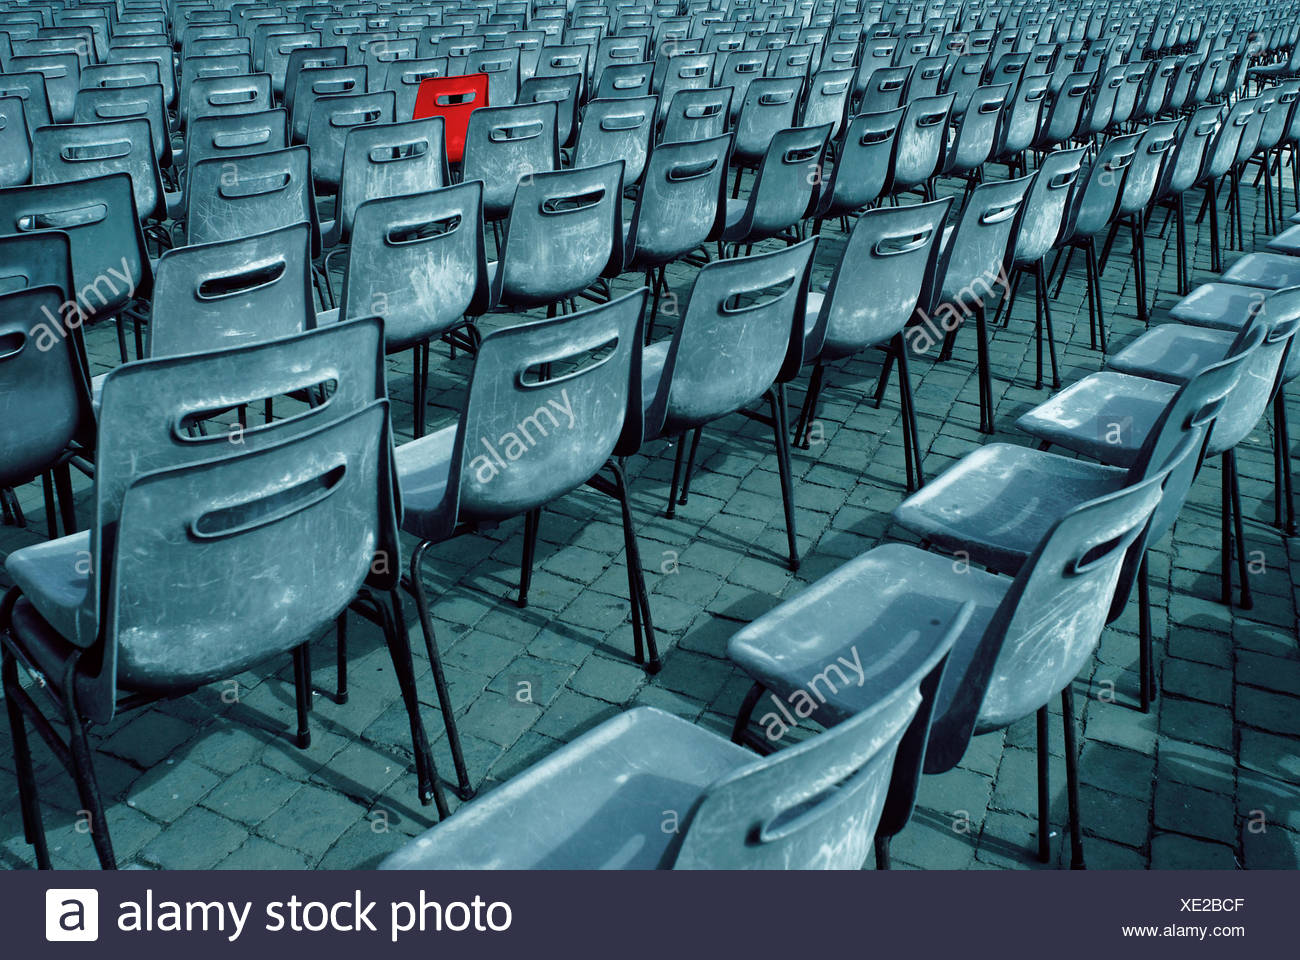 Rows of grey plastic chairs with one red chair - Stock Image